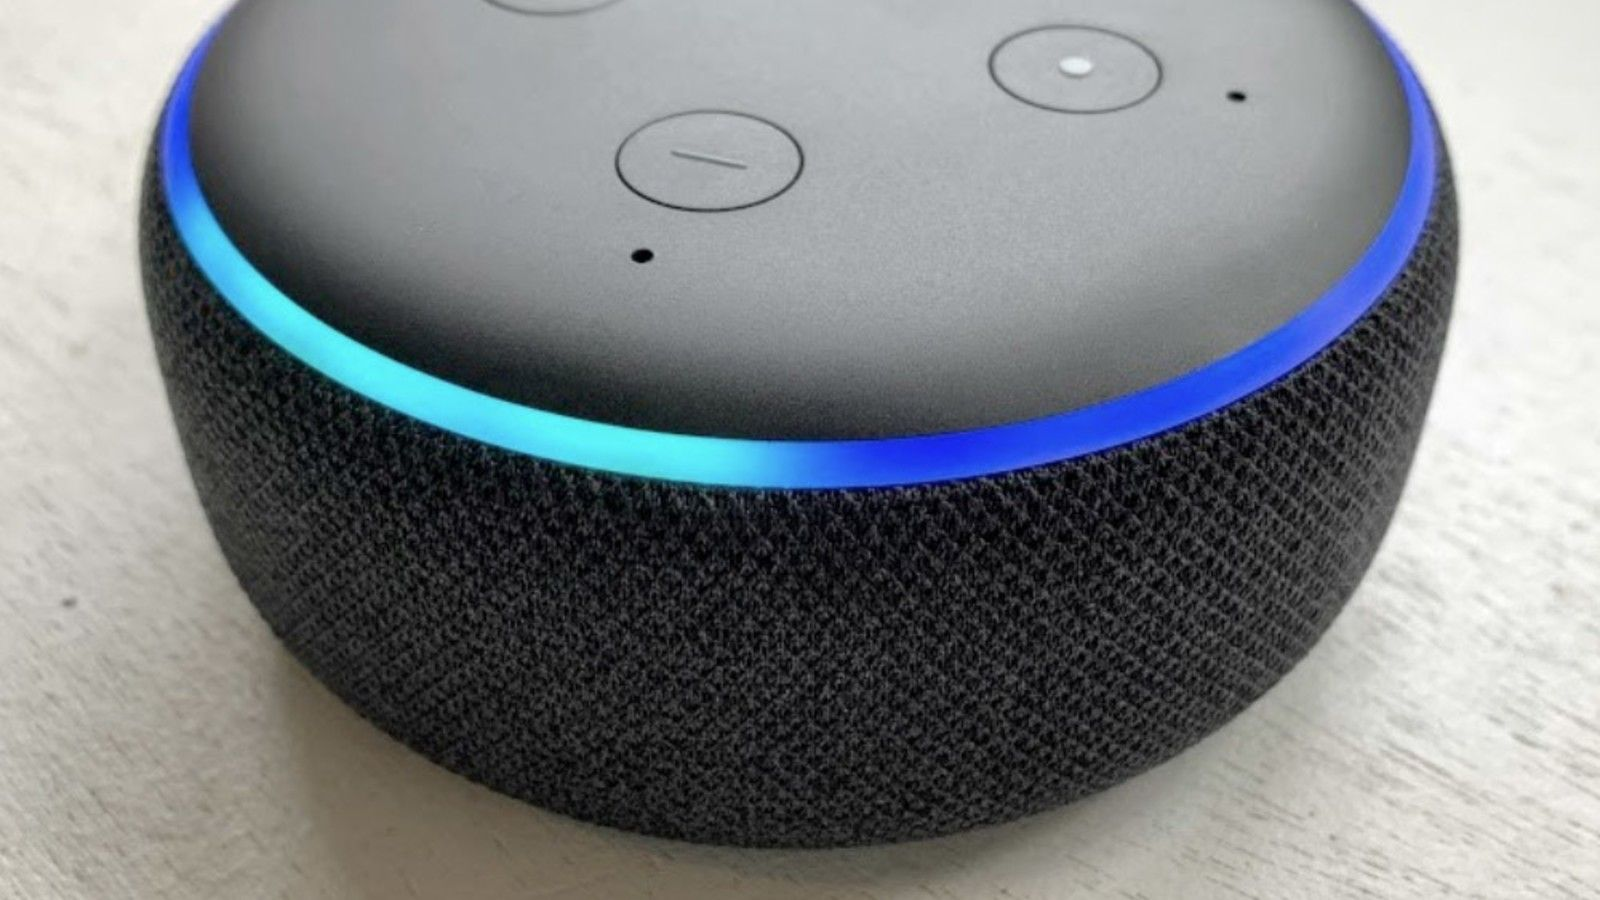 How to set up your new Amazon Echo, Dot, or Plus Android